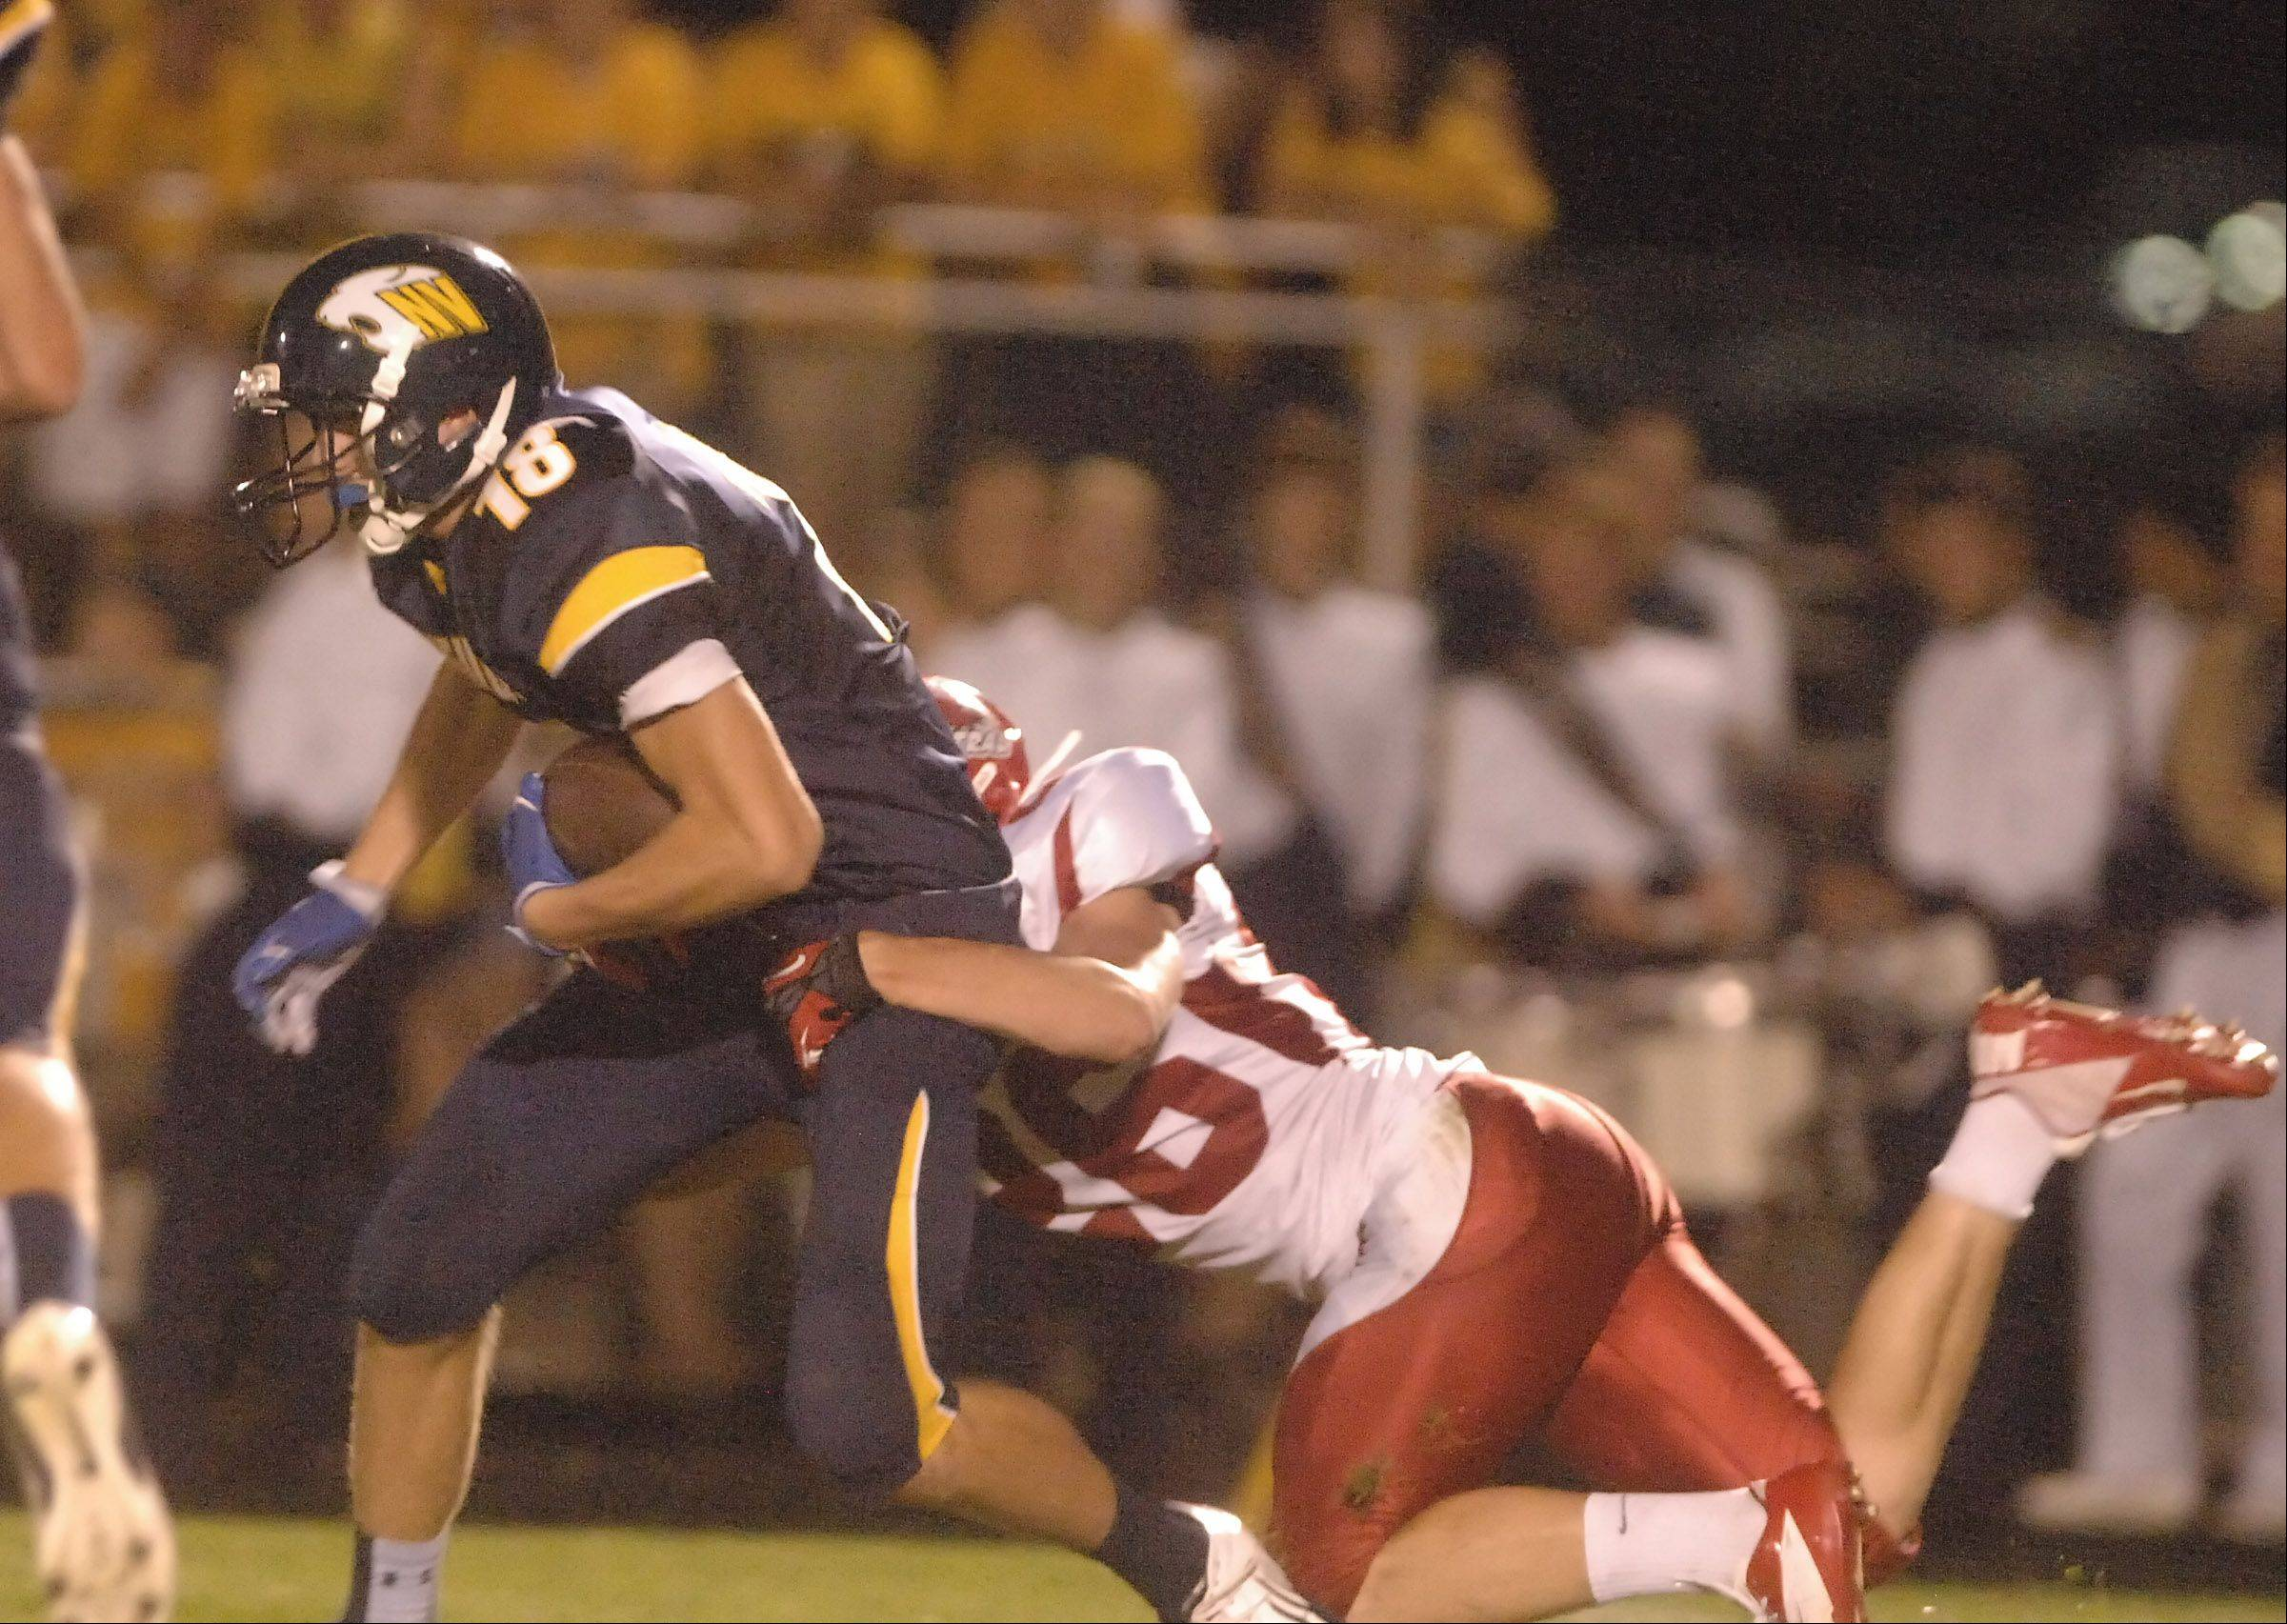 Ryan Kuhl of Neuqua Valley is pulled down by Kevin Nowak of Naperville Central.